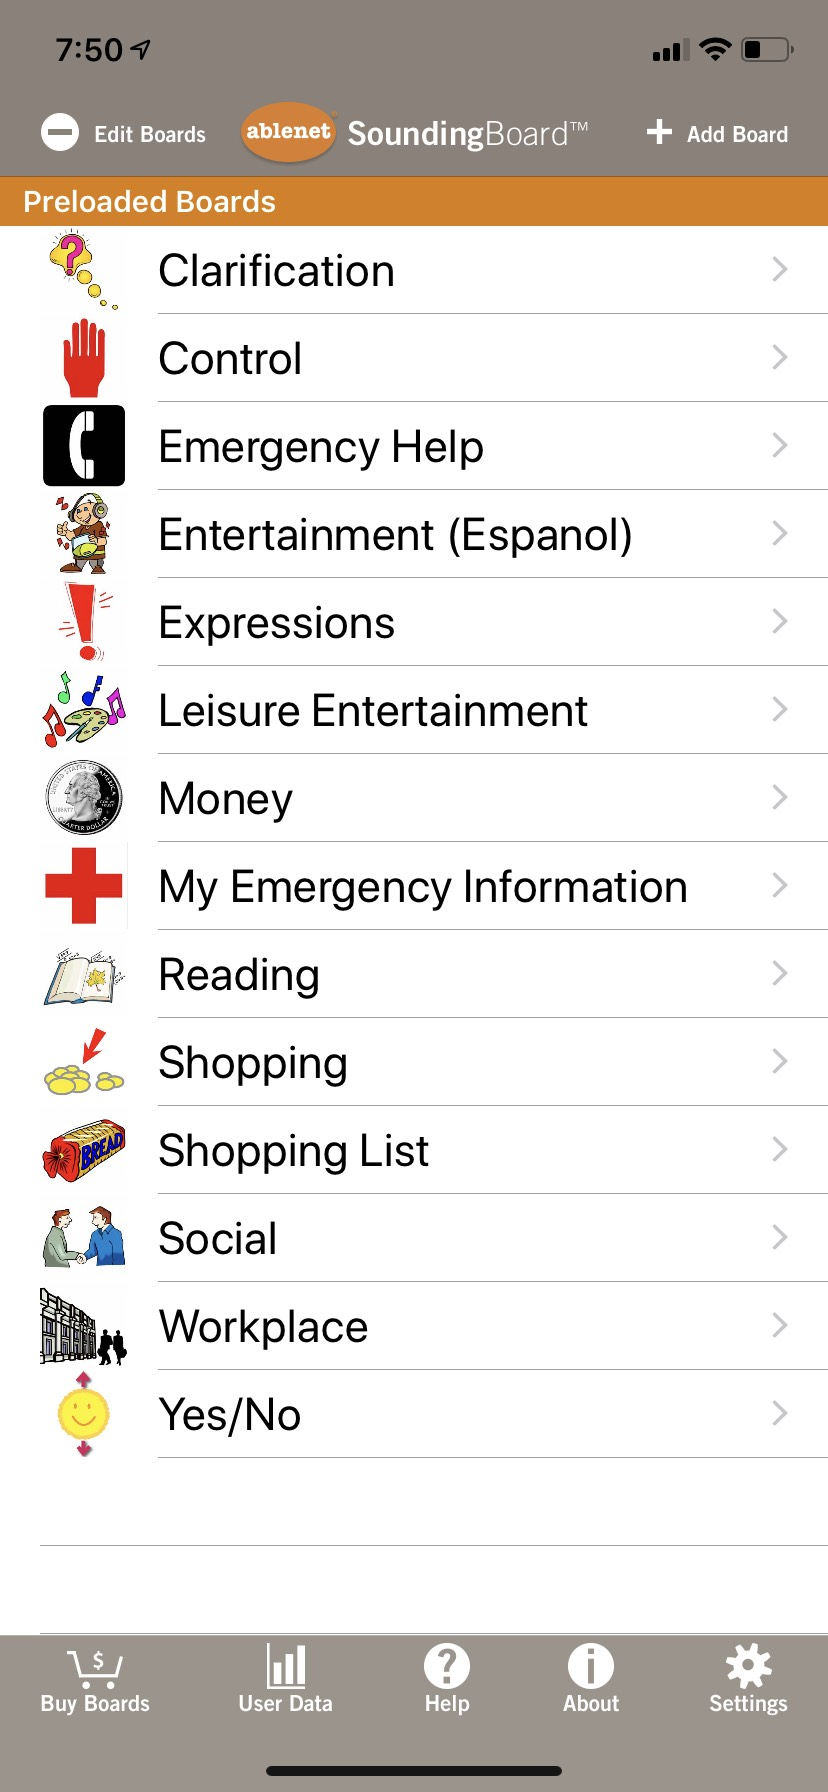 Screenshot of Preloaded Board categories: Clarification, Control, Emergency Help, Entertainment, Expressions, Leisure Entertainment, Money, My Emergency Info, Reading, Shopping, Shopping List, Social, Workplace, and Yes/No.